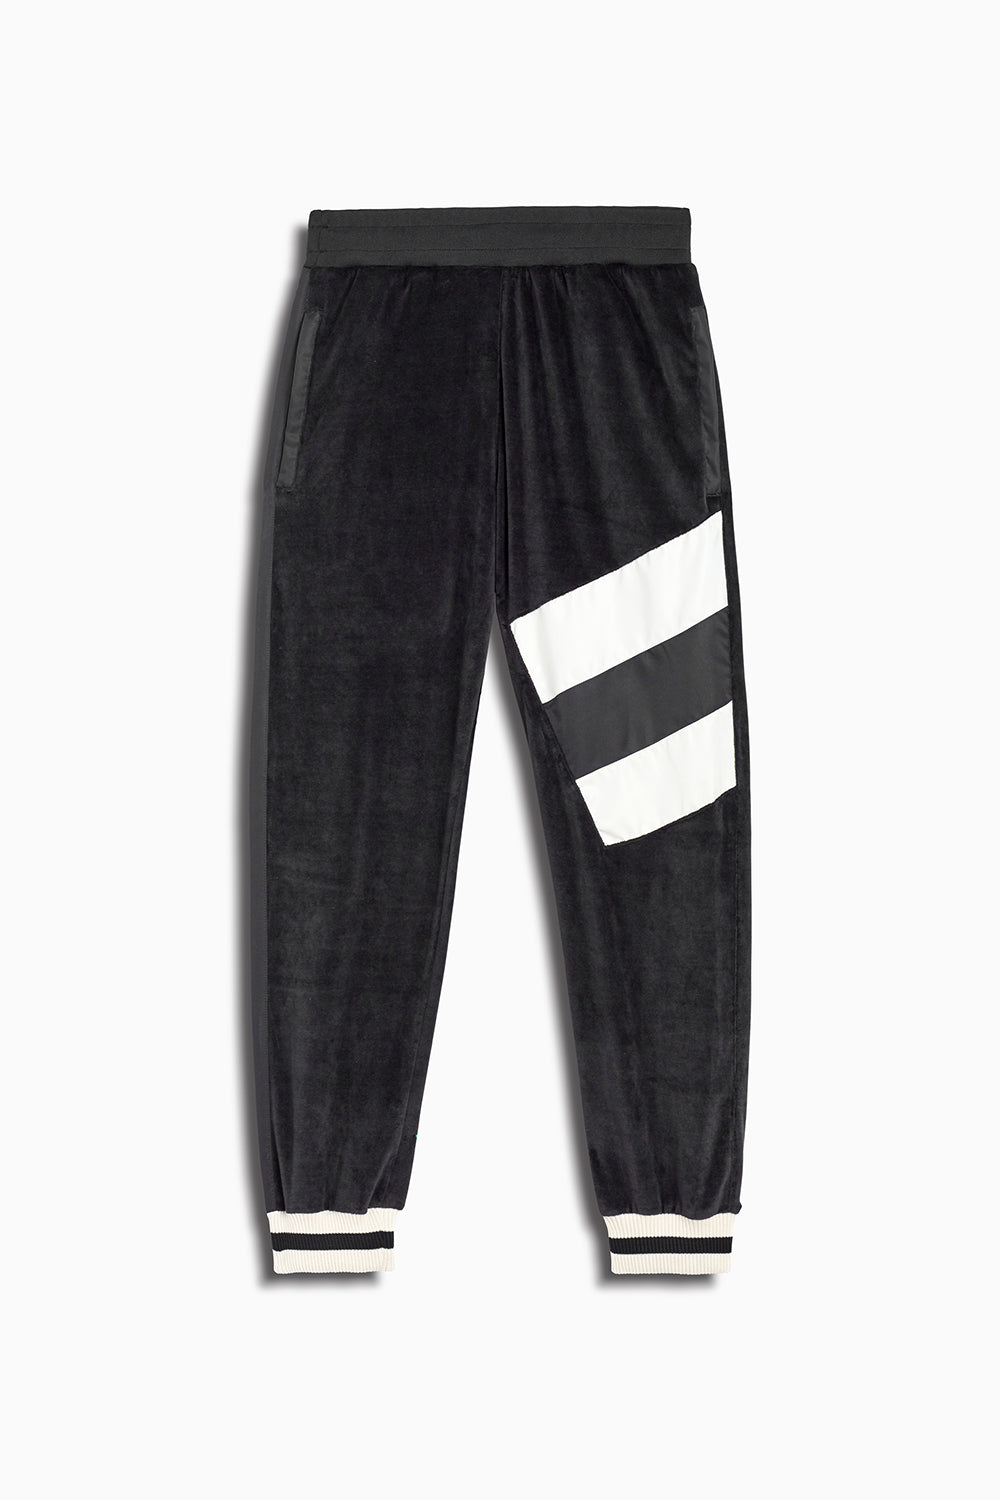 LA track pant velour in black/ivory by daniel patrick